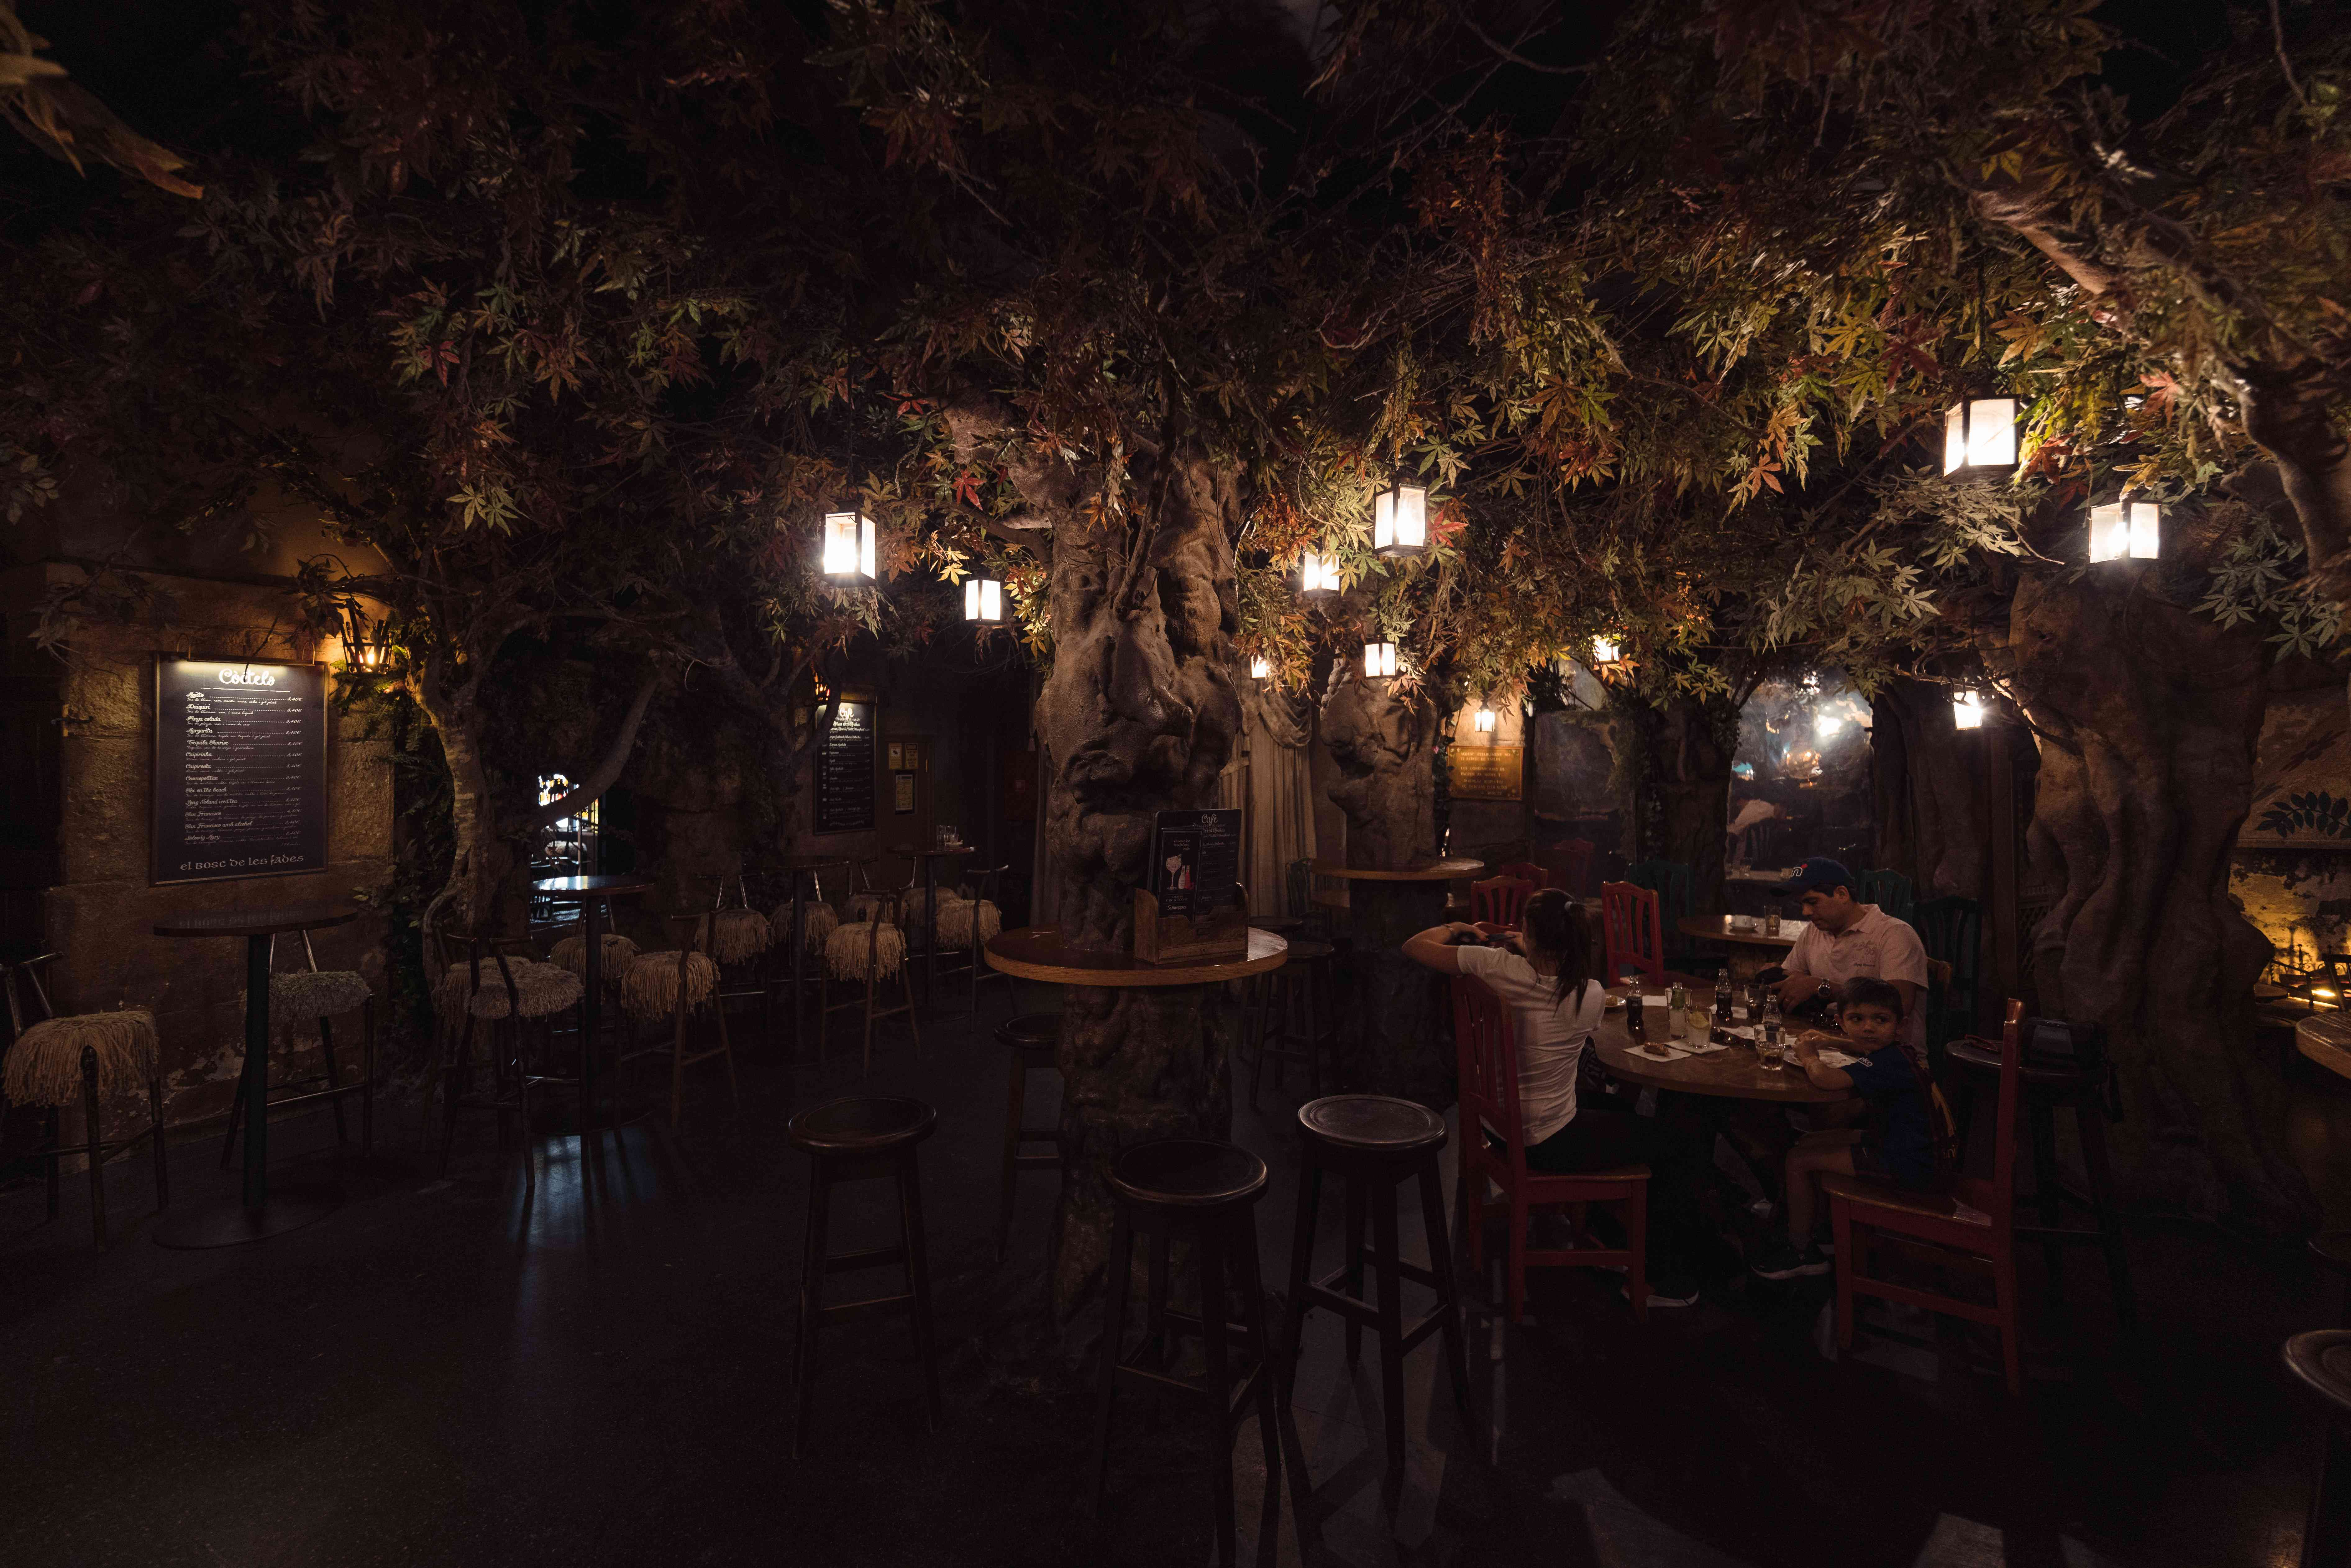 El Bosc de les fades - a cafe that looks like a forest at night